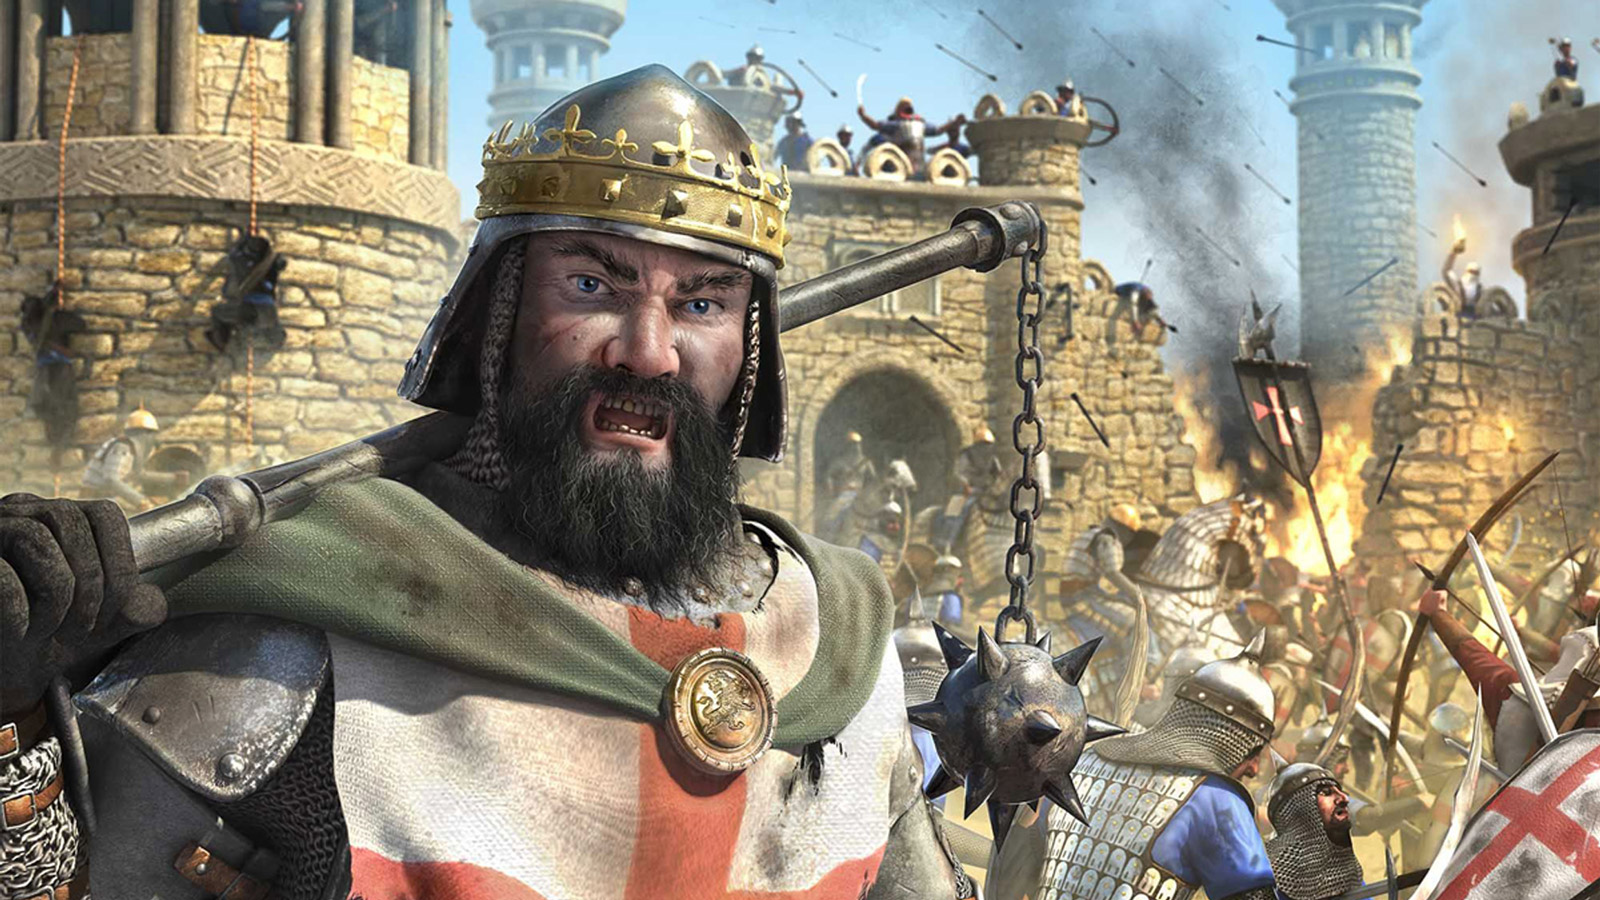 You can download Stronghold Crusader 2 1600900 HD Wallpaper in 1600x900